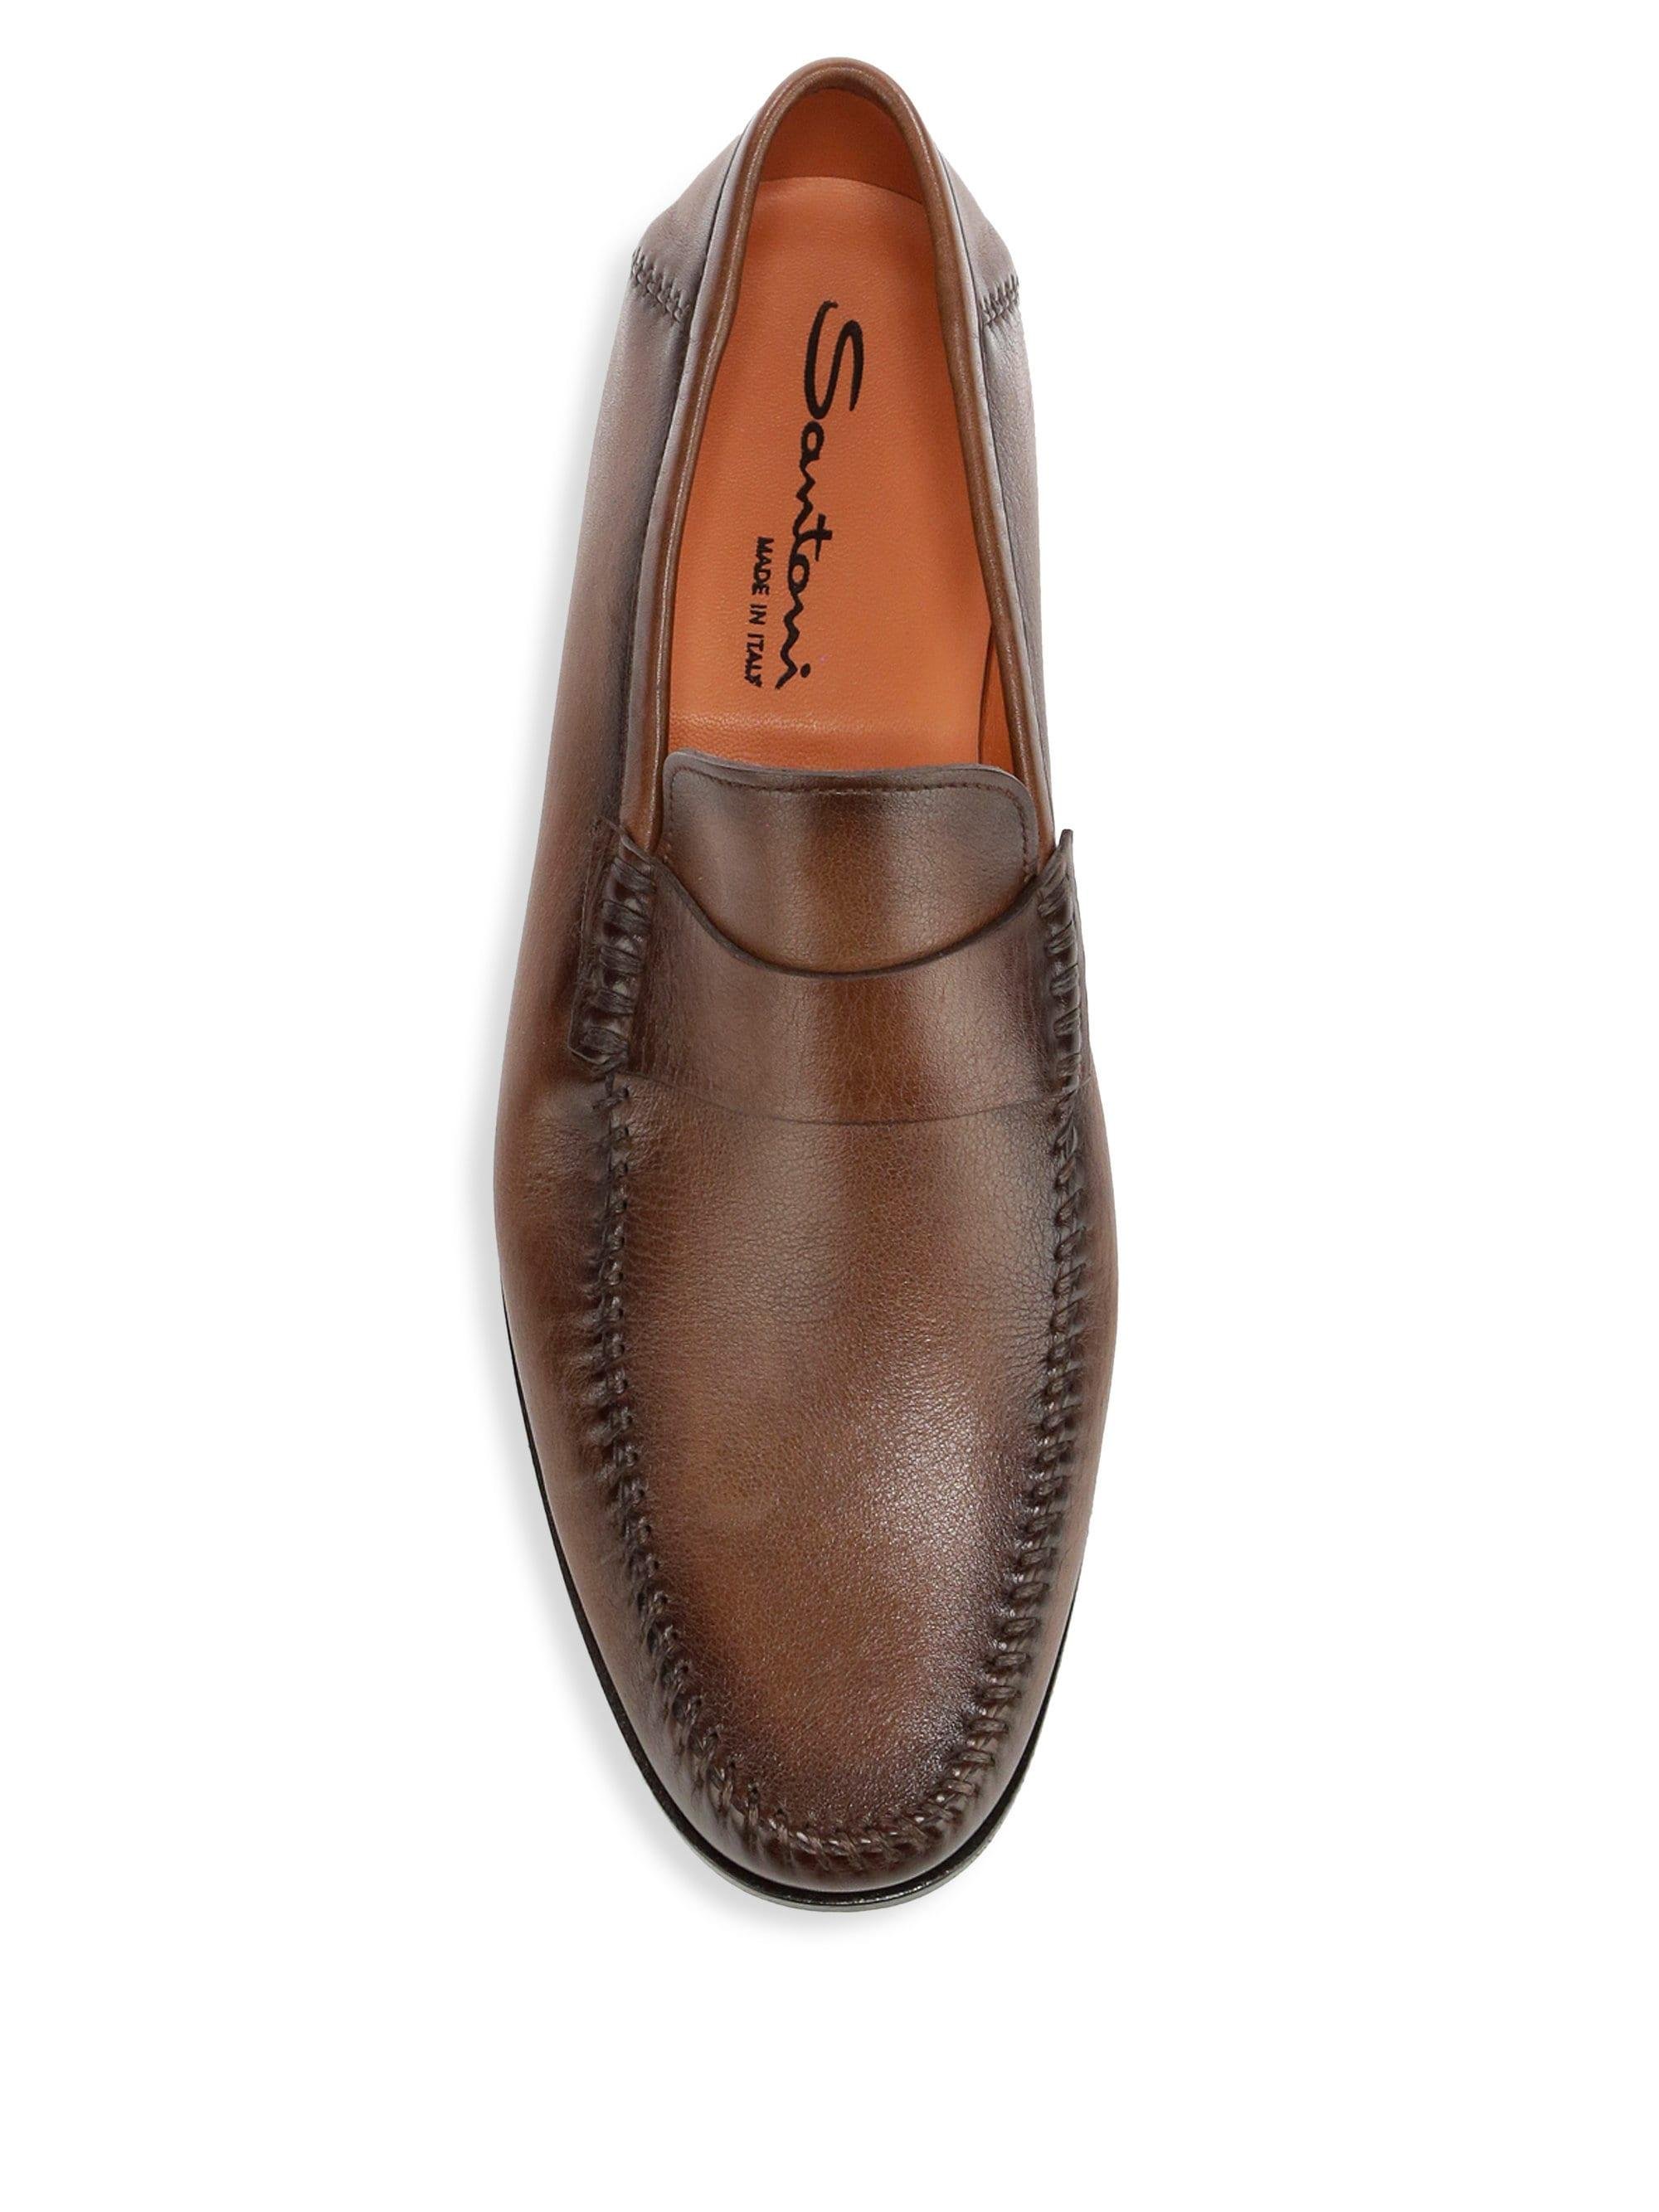 4ddfb72991d1 Santoni Men s Paine Leather Loafers - Brown - Size 11.5 D in Brown for Men  - Lyst